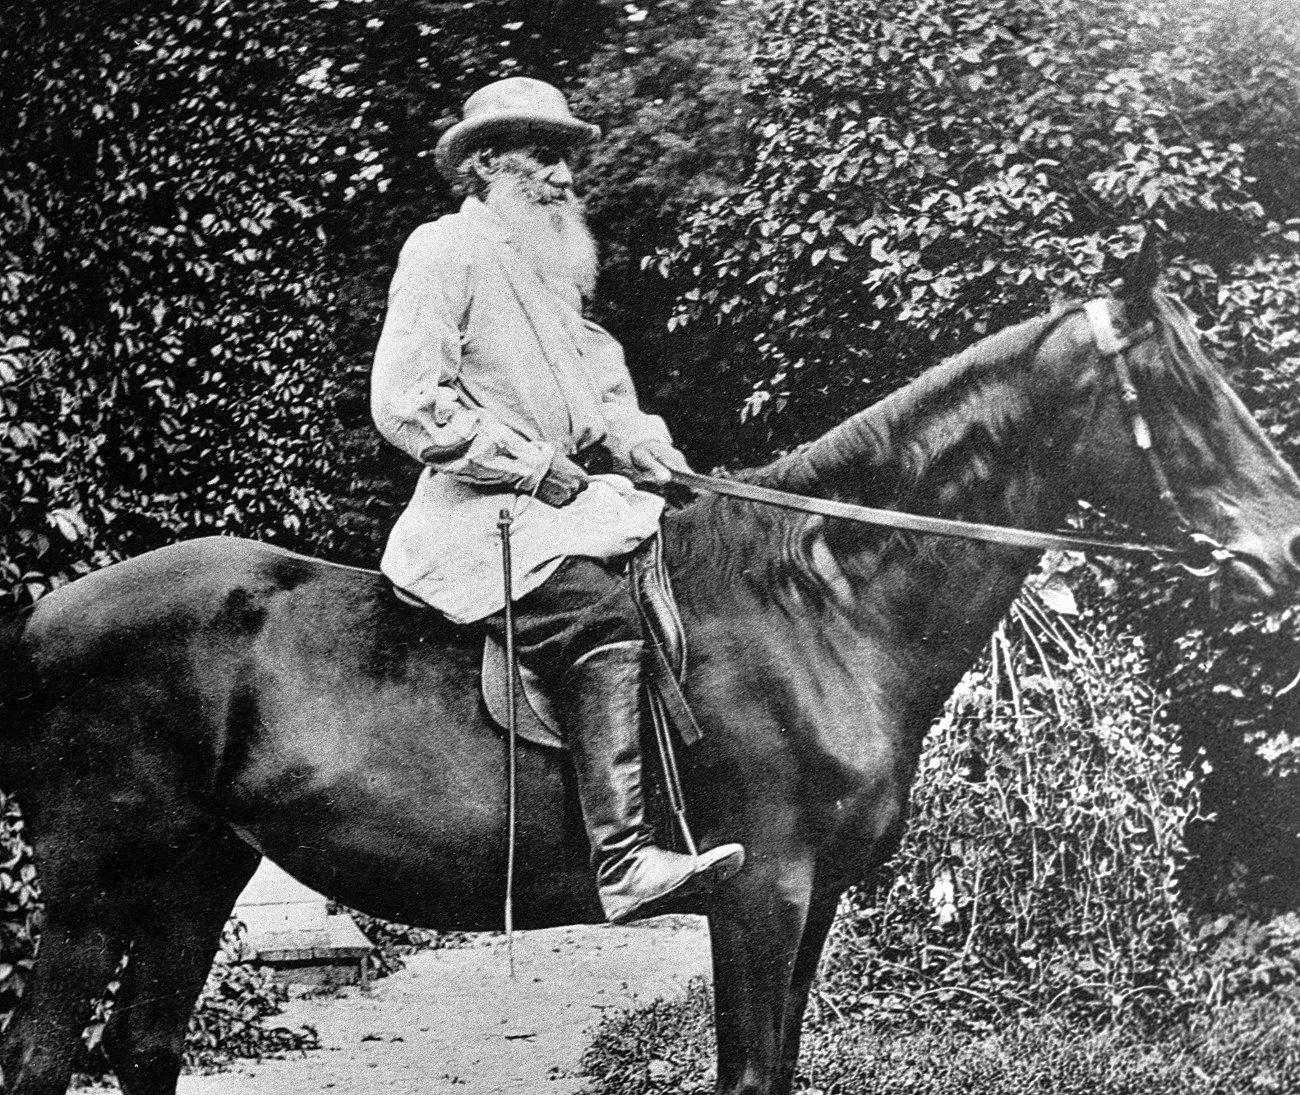 Leo Tolstoy riding a horse in Yasnaya Polyana